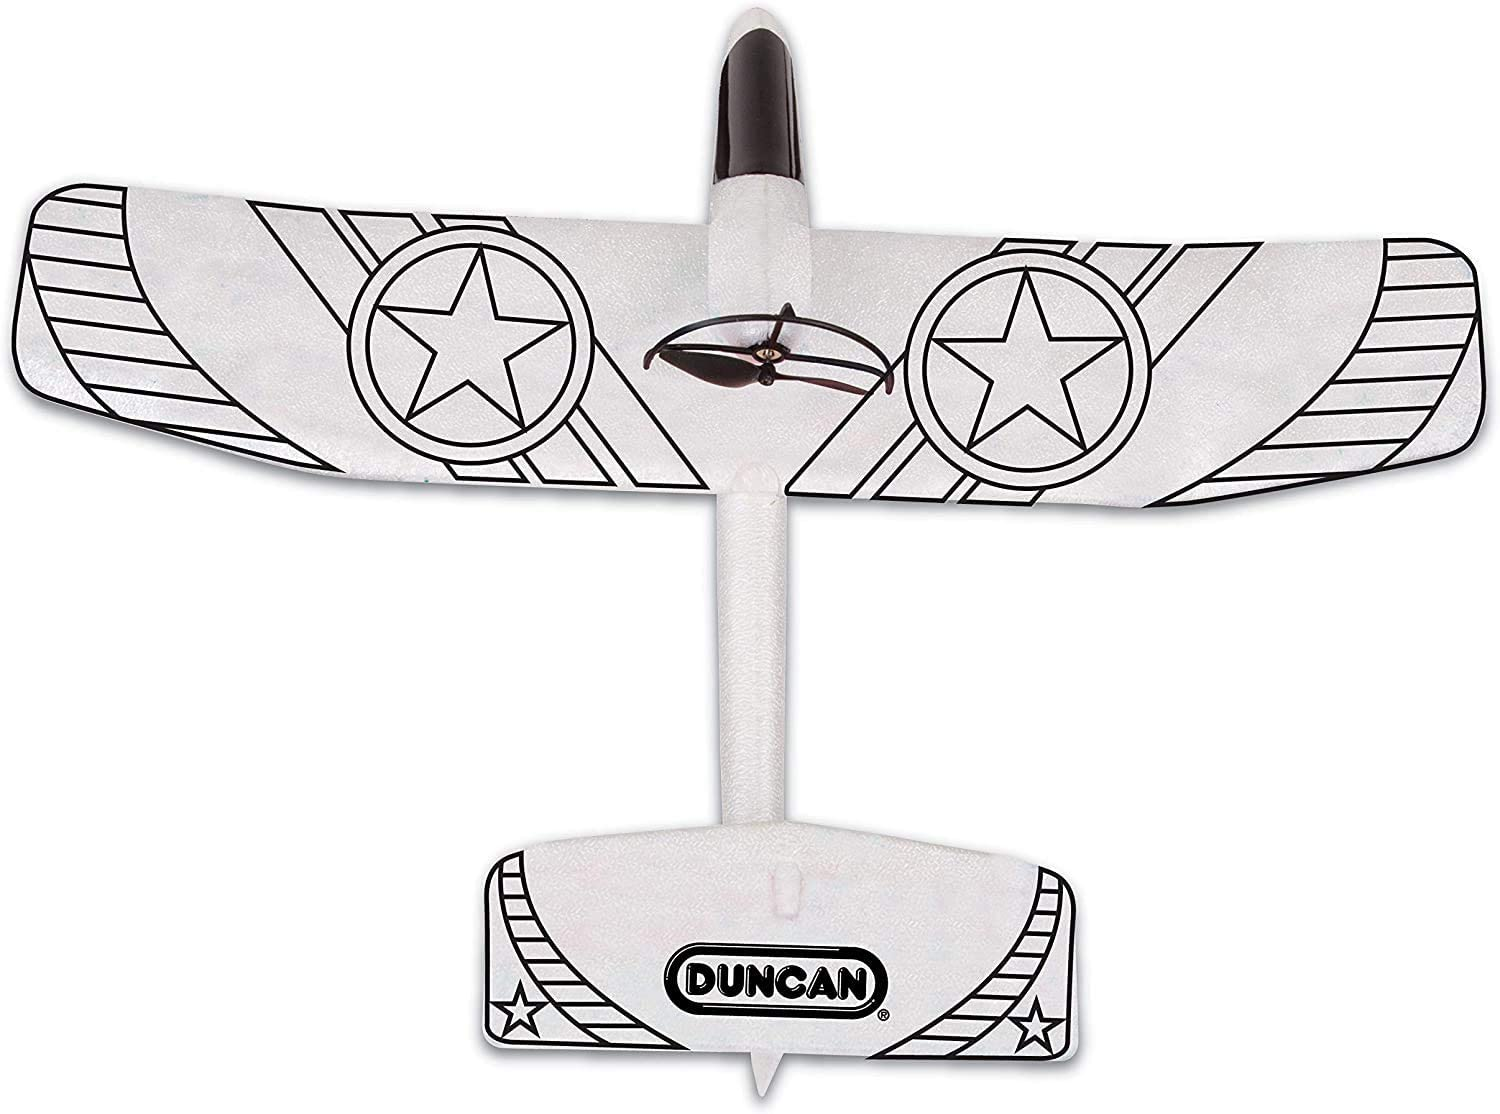 USB Charger Cable 2 Flight Positions Power Assist Motorized Toy with Template Paint Kit Duncan Toys EX-1 Glider Plane Extra Propellers